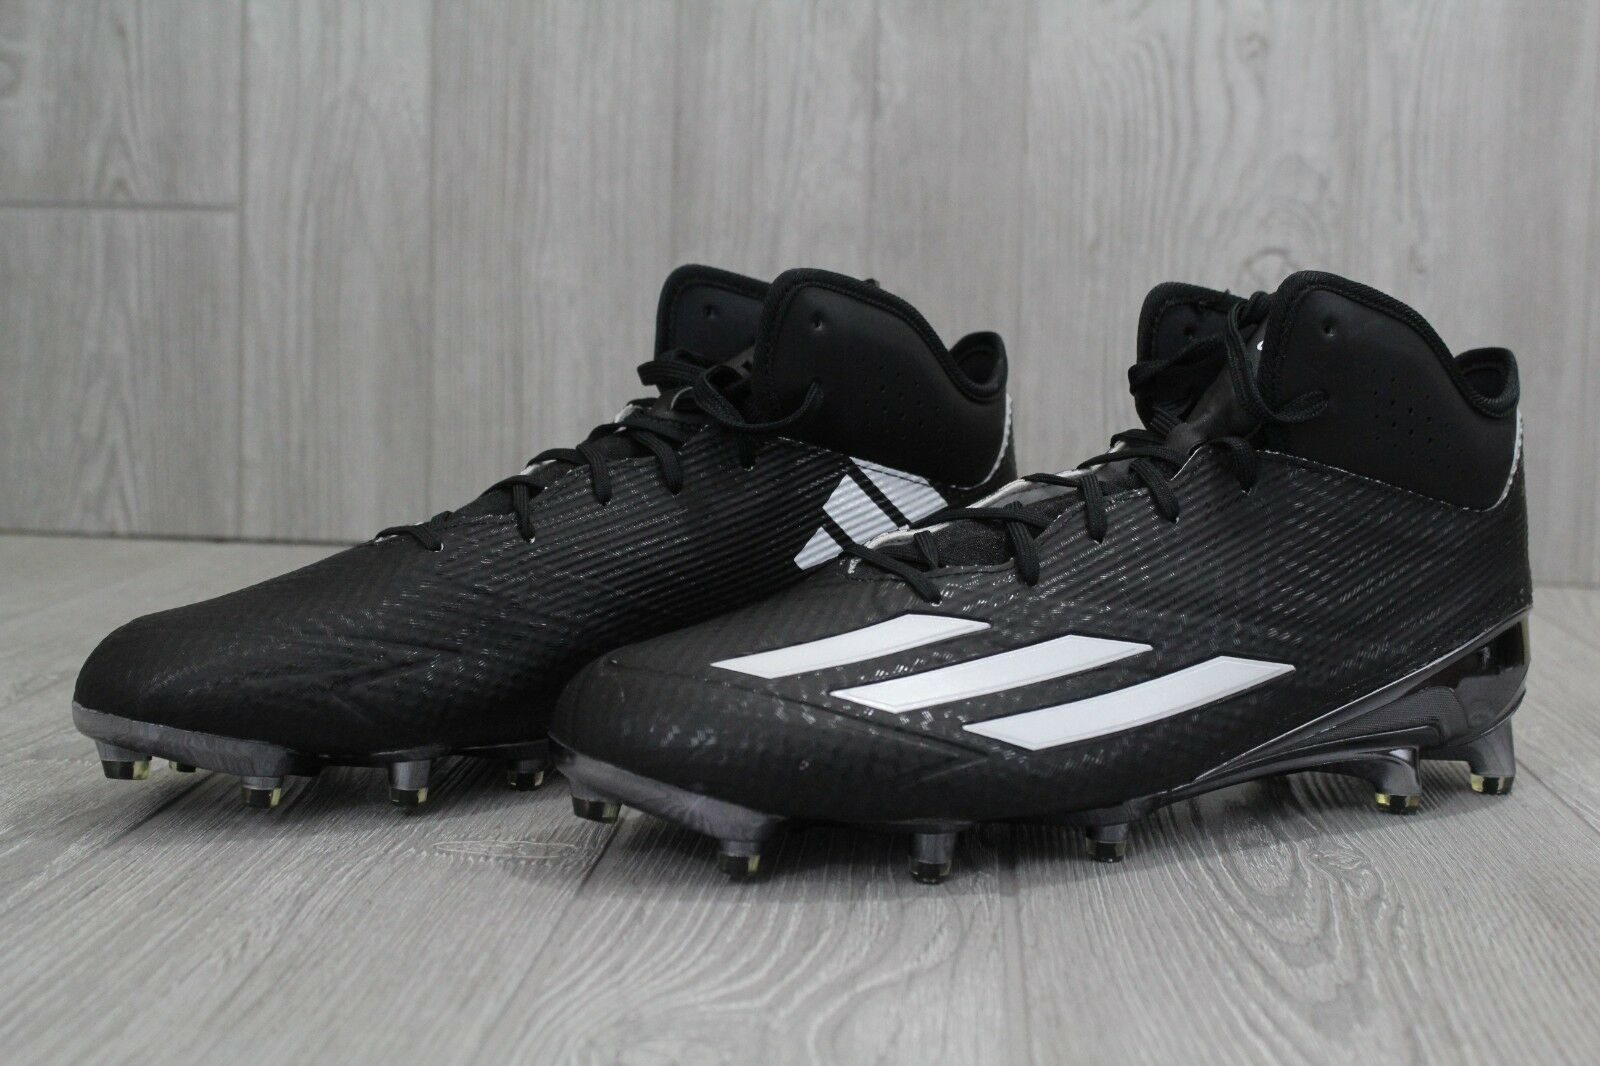 huge selection of bf2b6 df993 ... 29 New Mens Rare Adidas Adidas Adidas 5 Star Mid Black Football Cleats  Team Issued Size ...